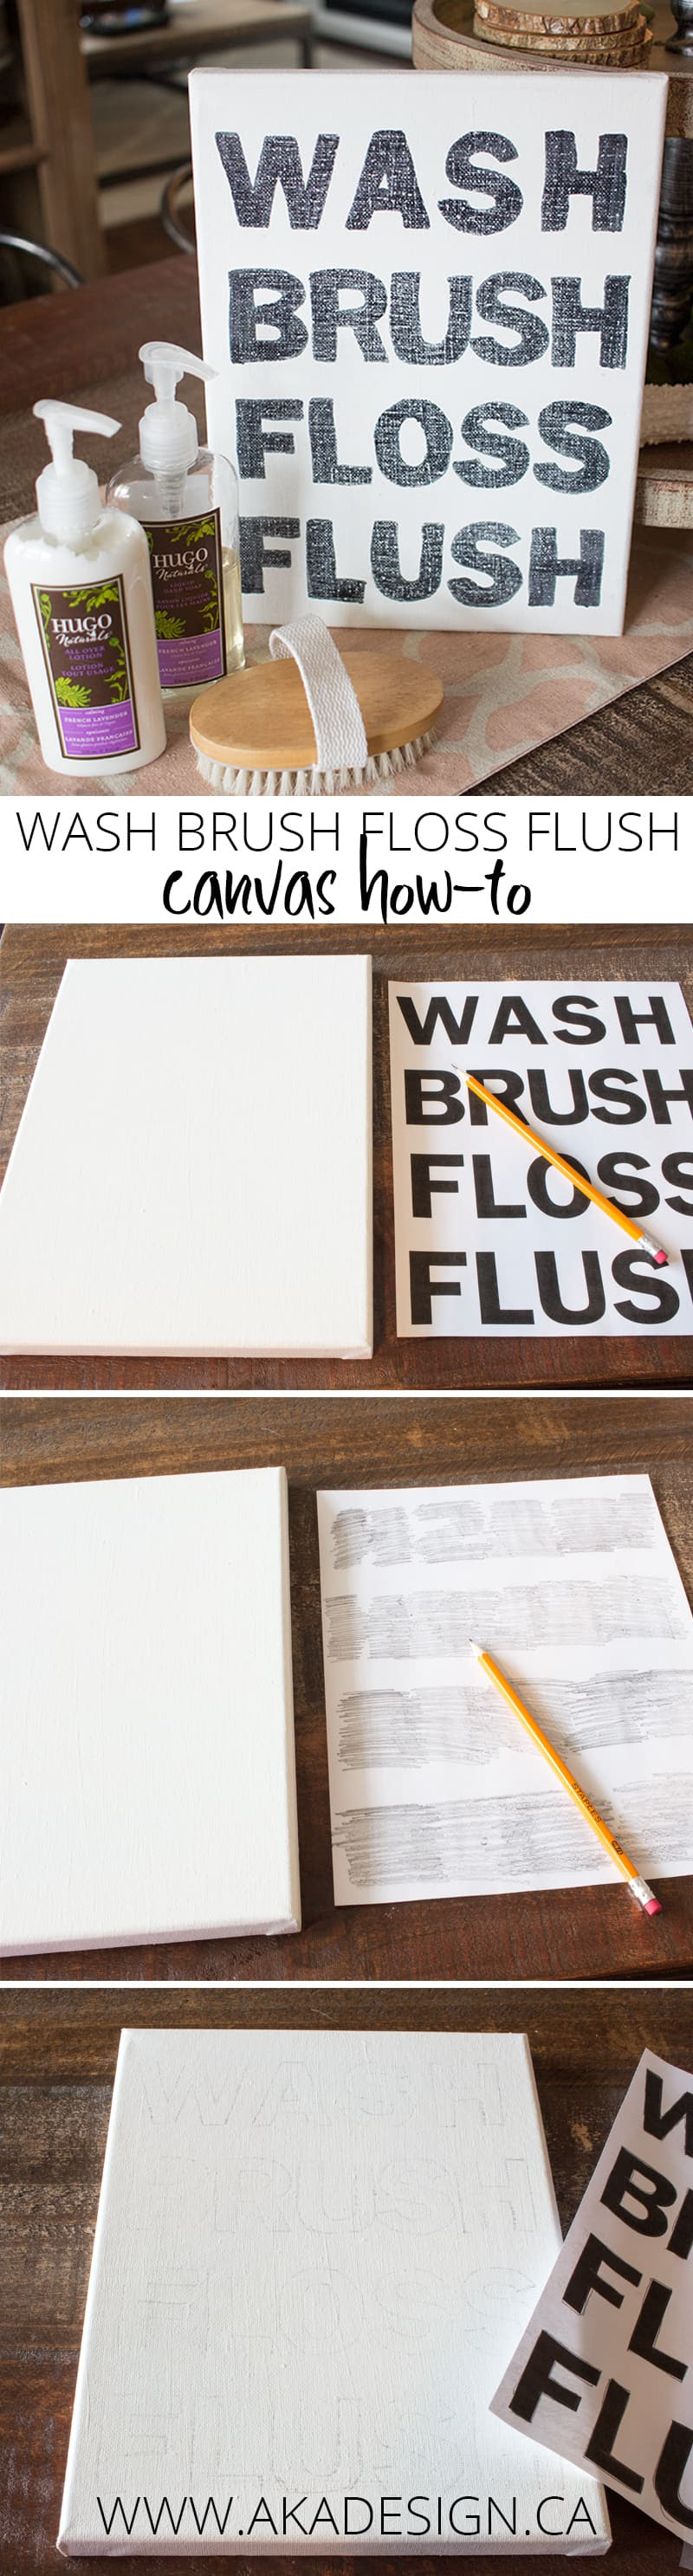 wash brush floss flush canvas how to step by step